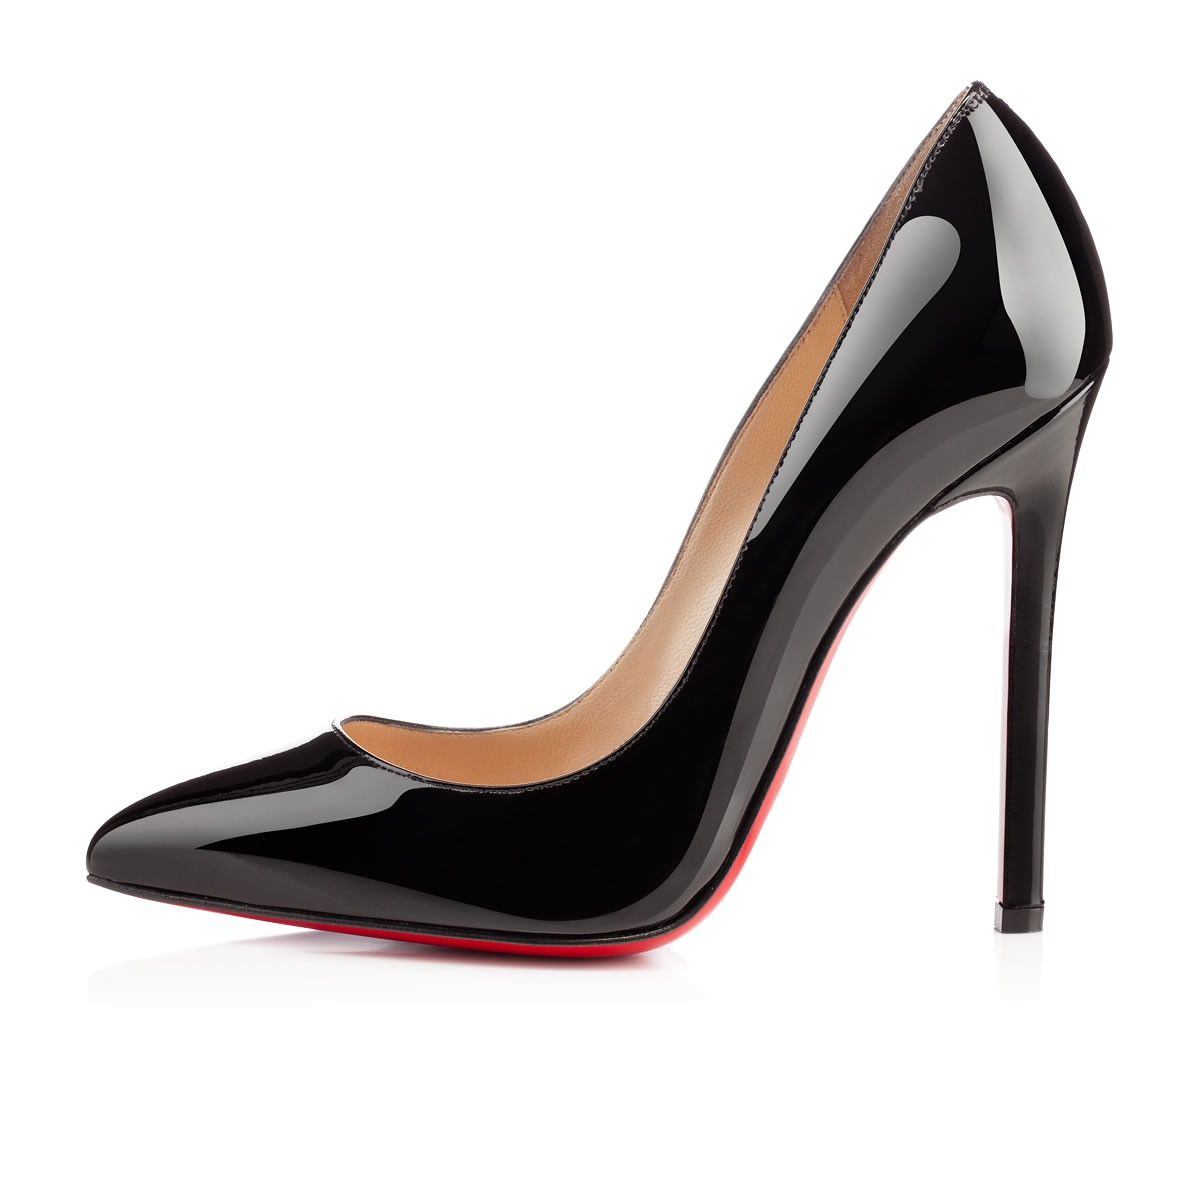 5b7232ce4068 Cheap Christian Louboutin Shoes. Cheap Christian Louboutin CL ...